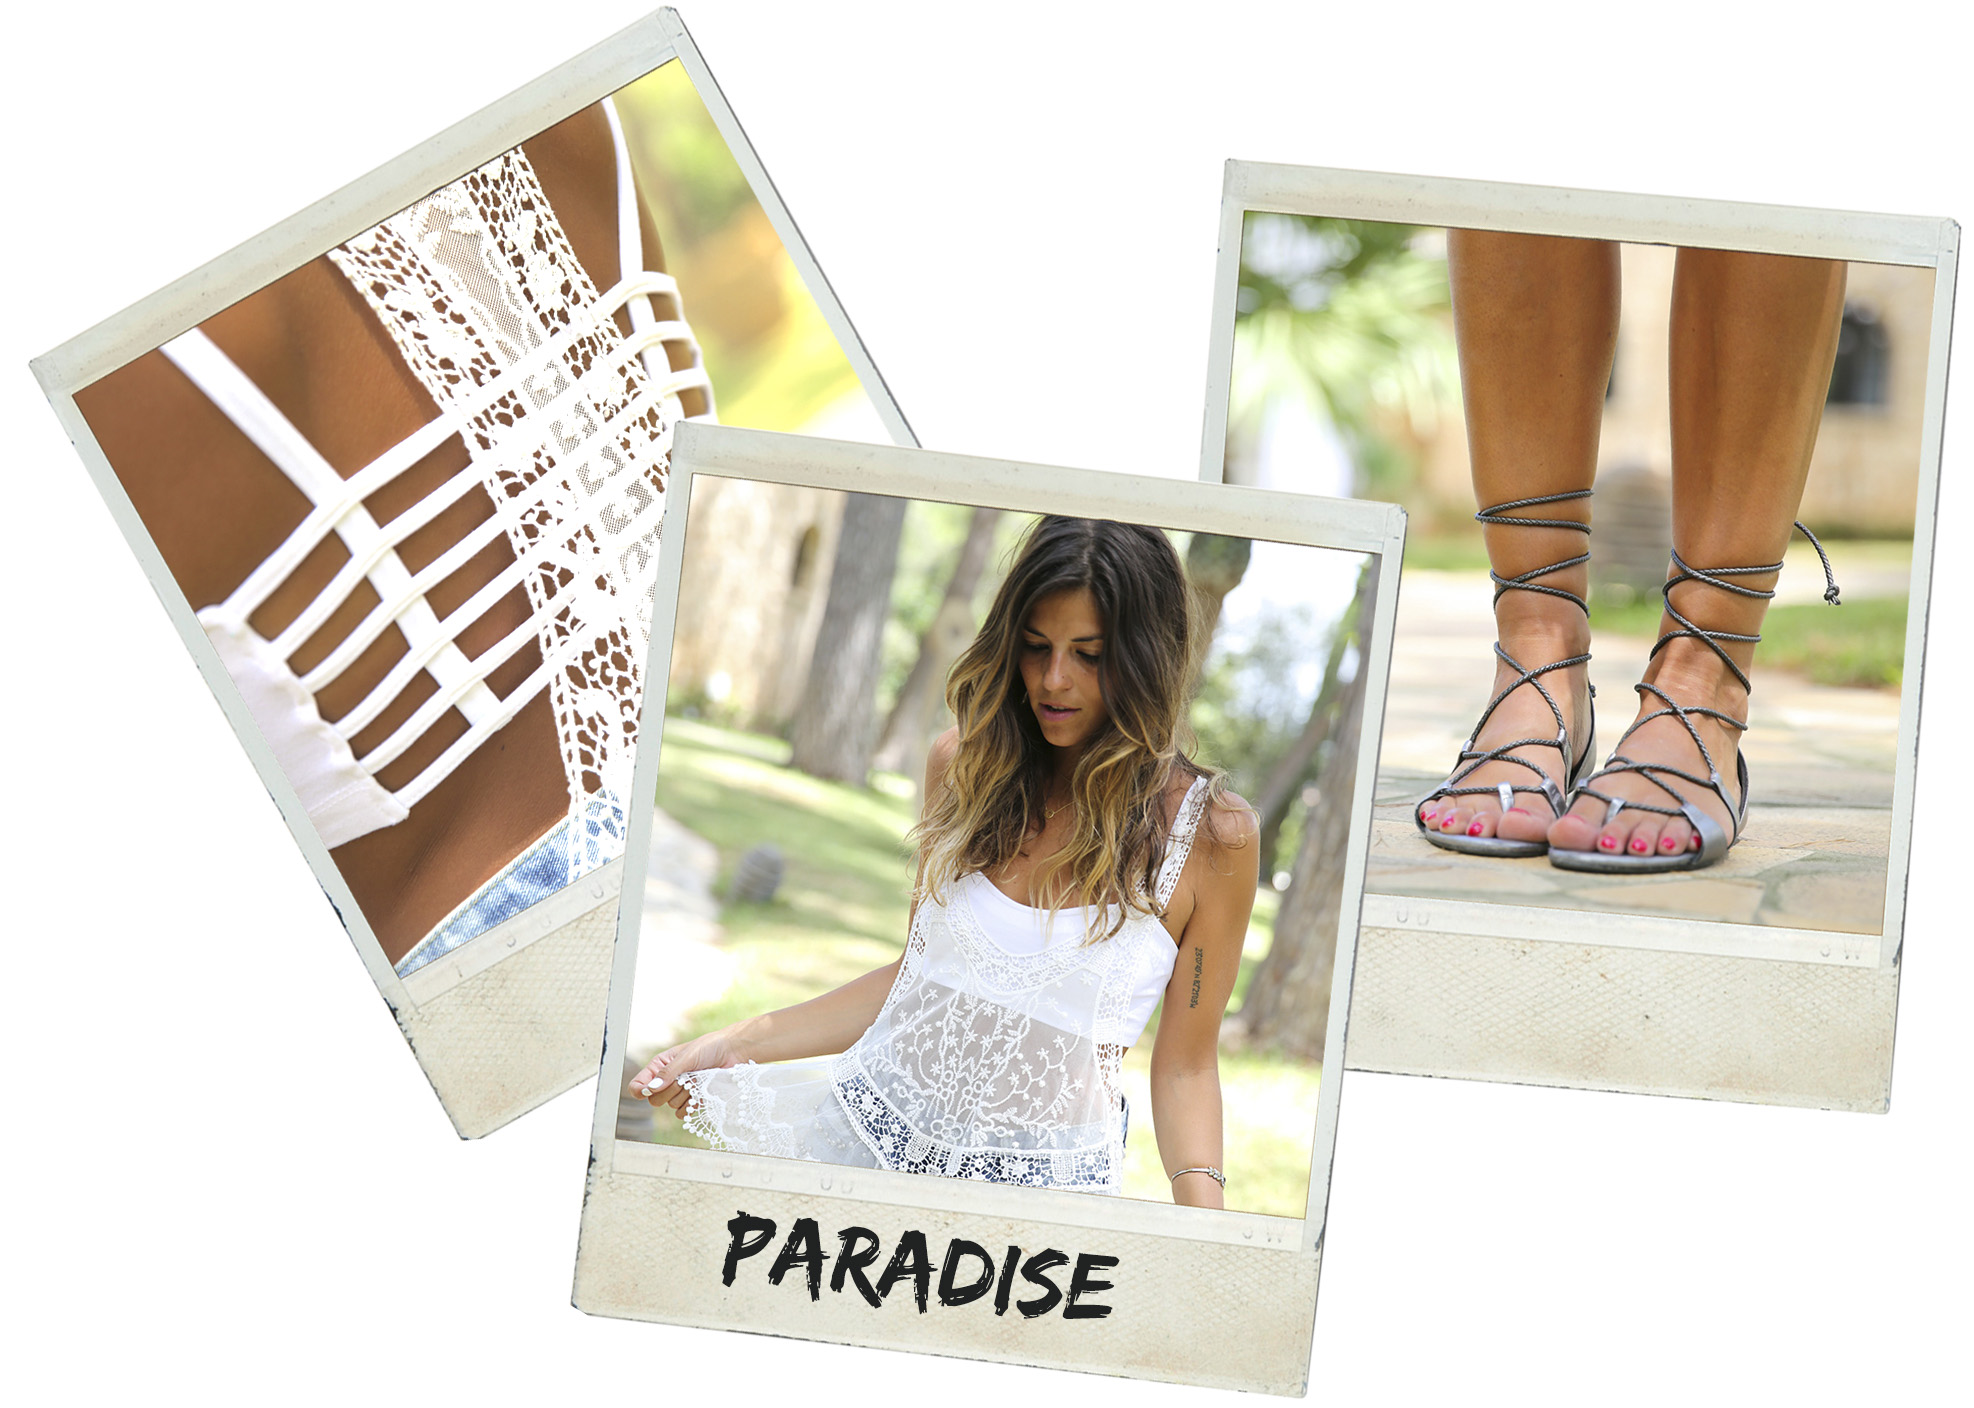 trendy_taste-look-outfit-street_style-ootd-blog-moda_españa-fashion_spain-denim_shorts-vaqueros-sandalias-romanas-roman_sandals-top-hippie-ibiza-market-mercadillo-sa_talaia-palladium-polaroid